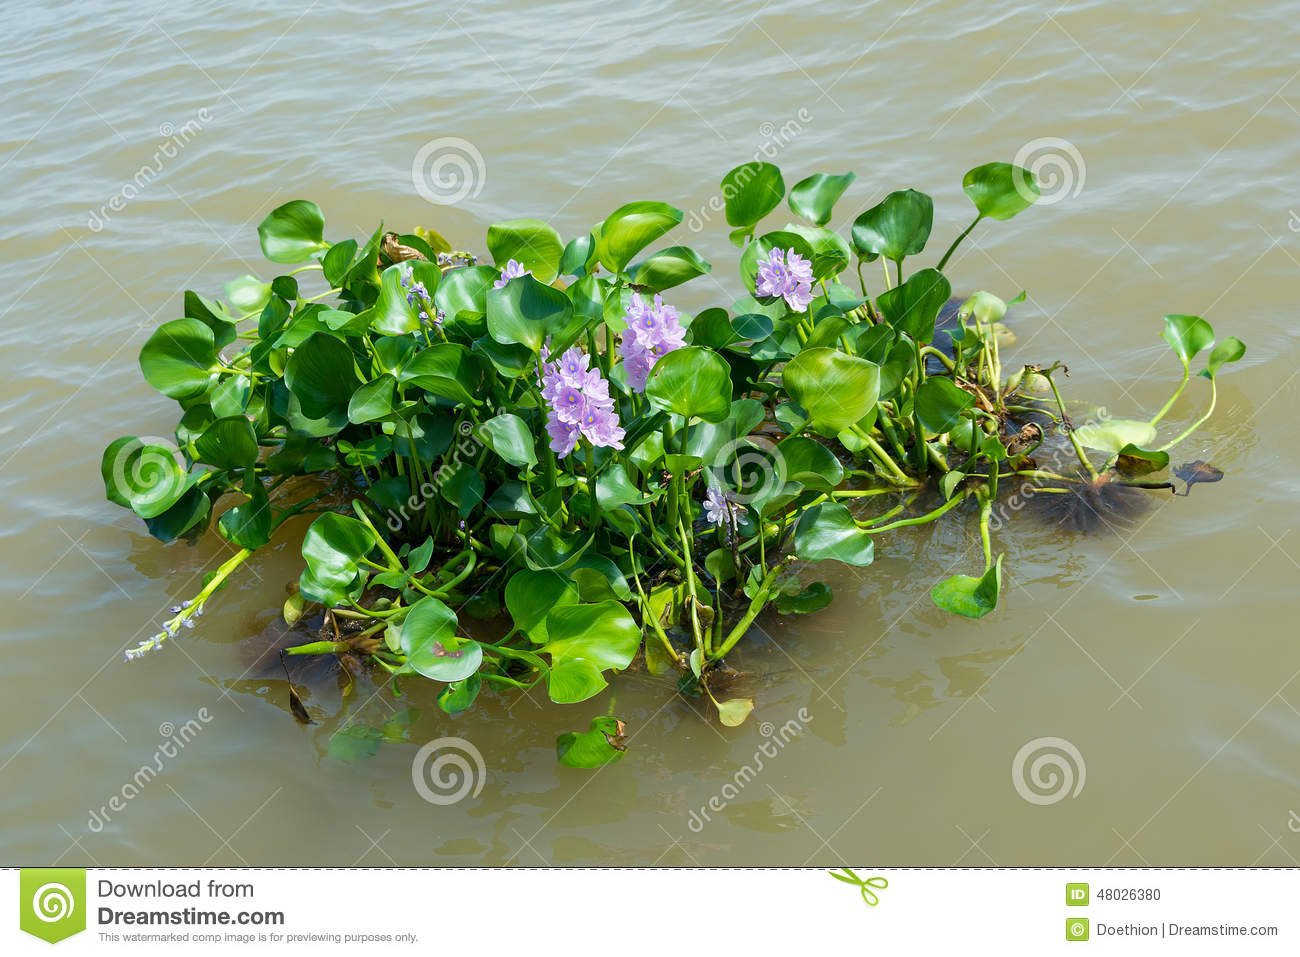 how to draw a water hyacinth